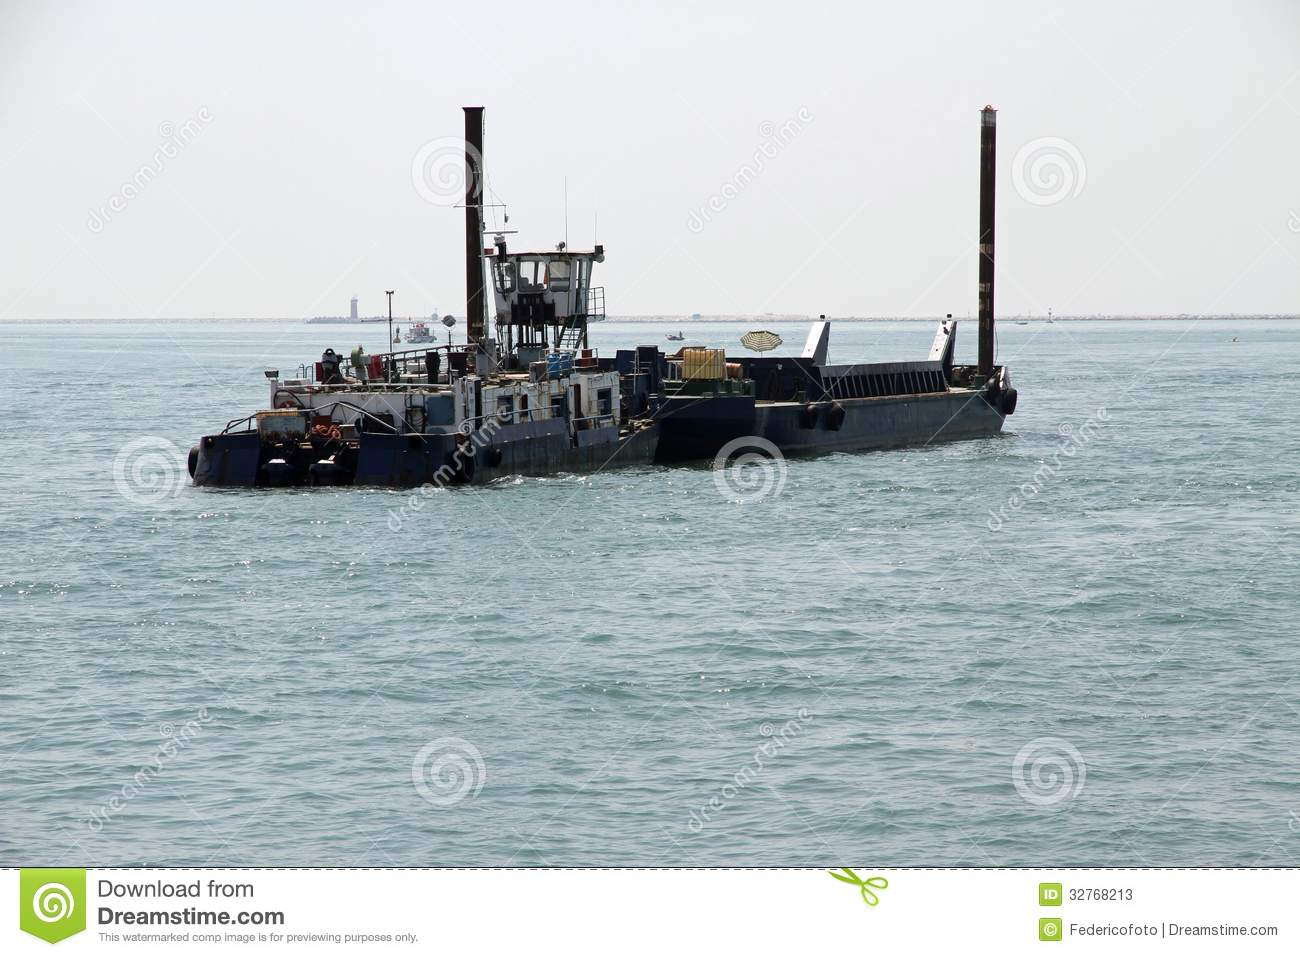 Boat Construction Materials : Huge boat for transporting building materials stock photos